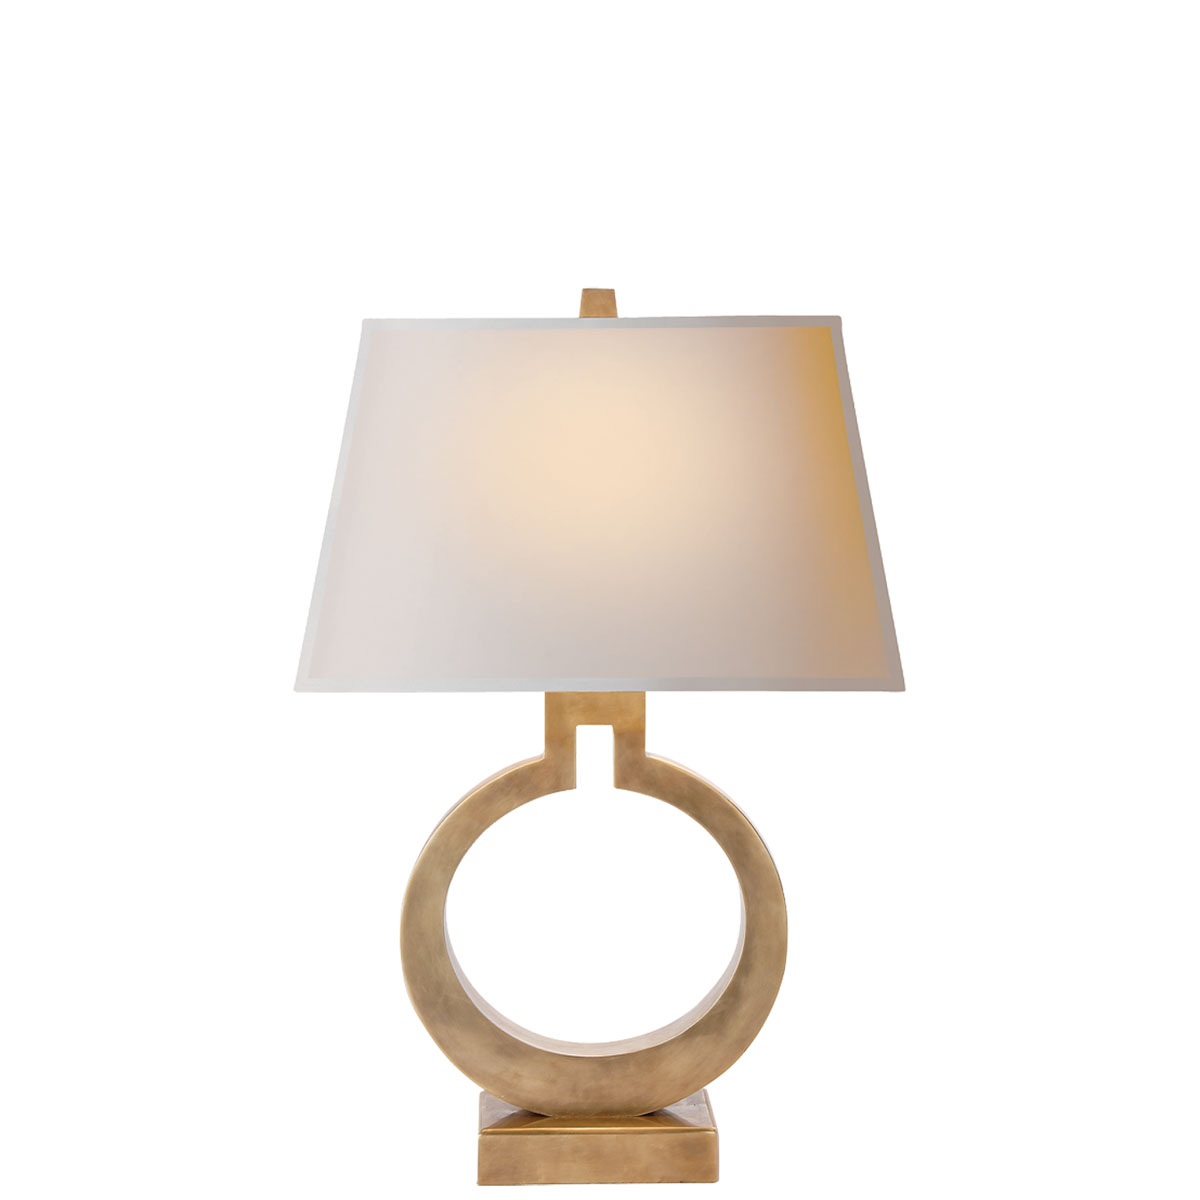 Large Ring Table Lamp 566.9000